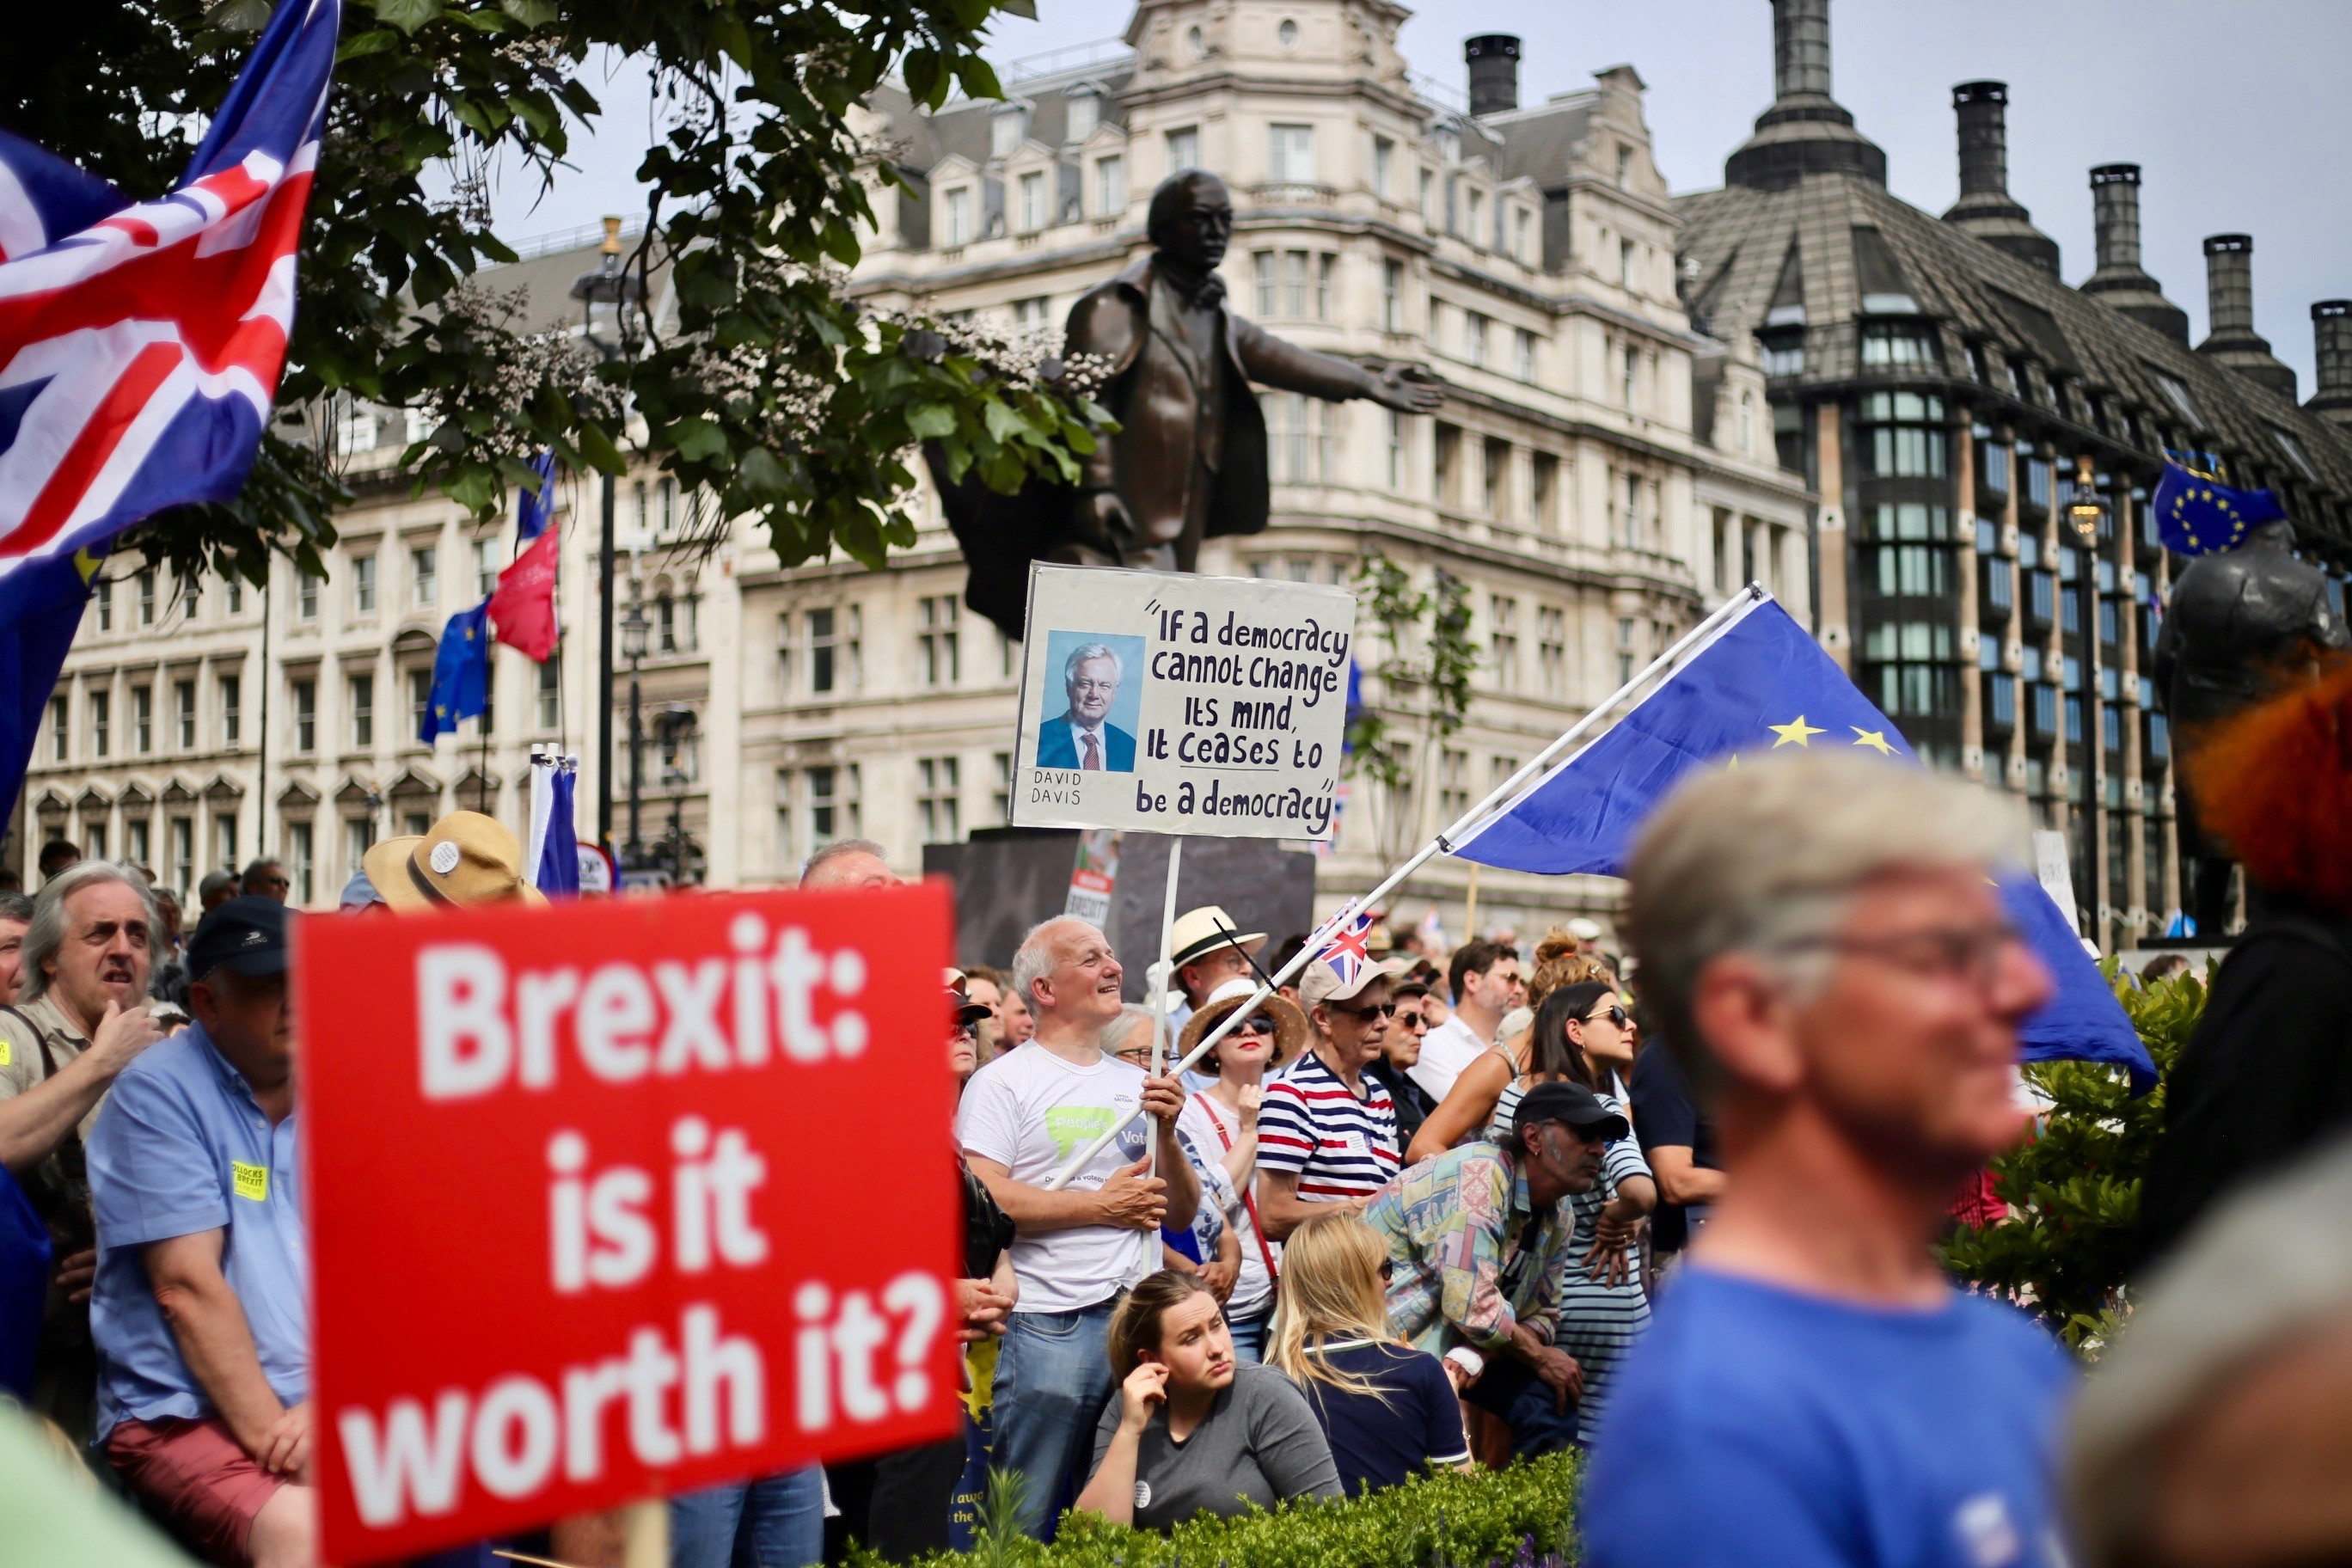 Hundreds of people at an anti-Brexit protest outside Westminster Palace, London